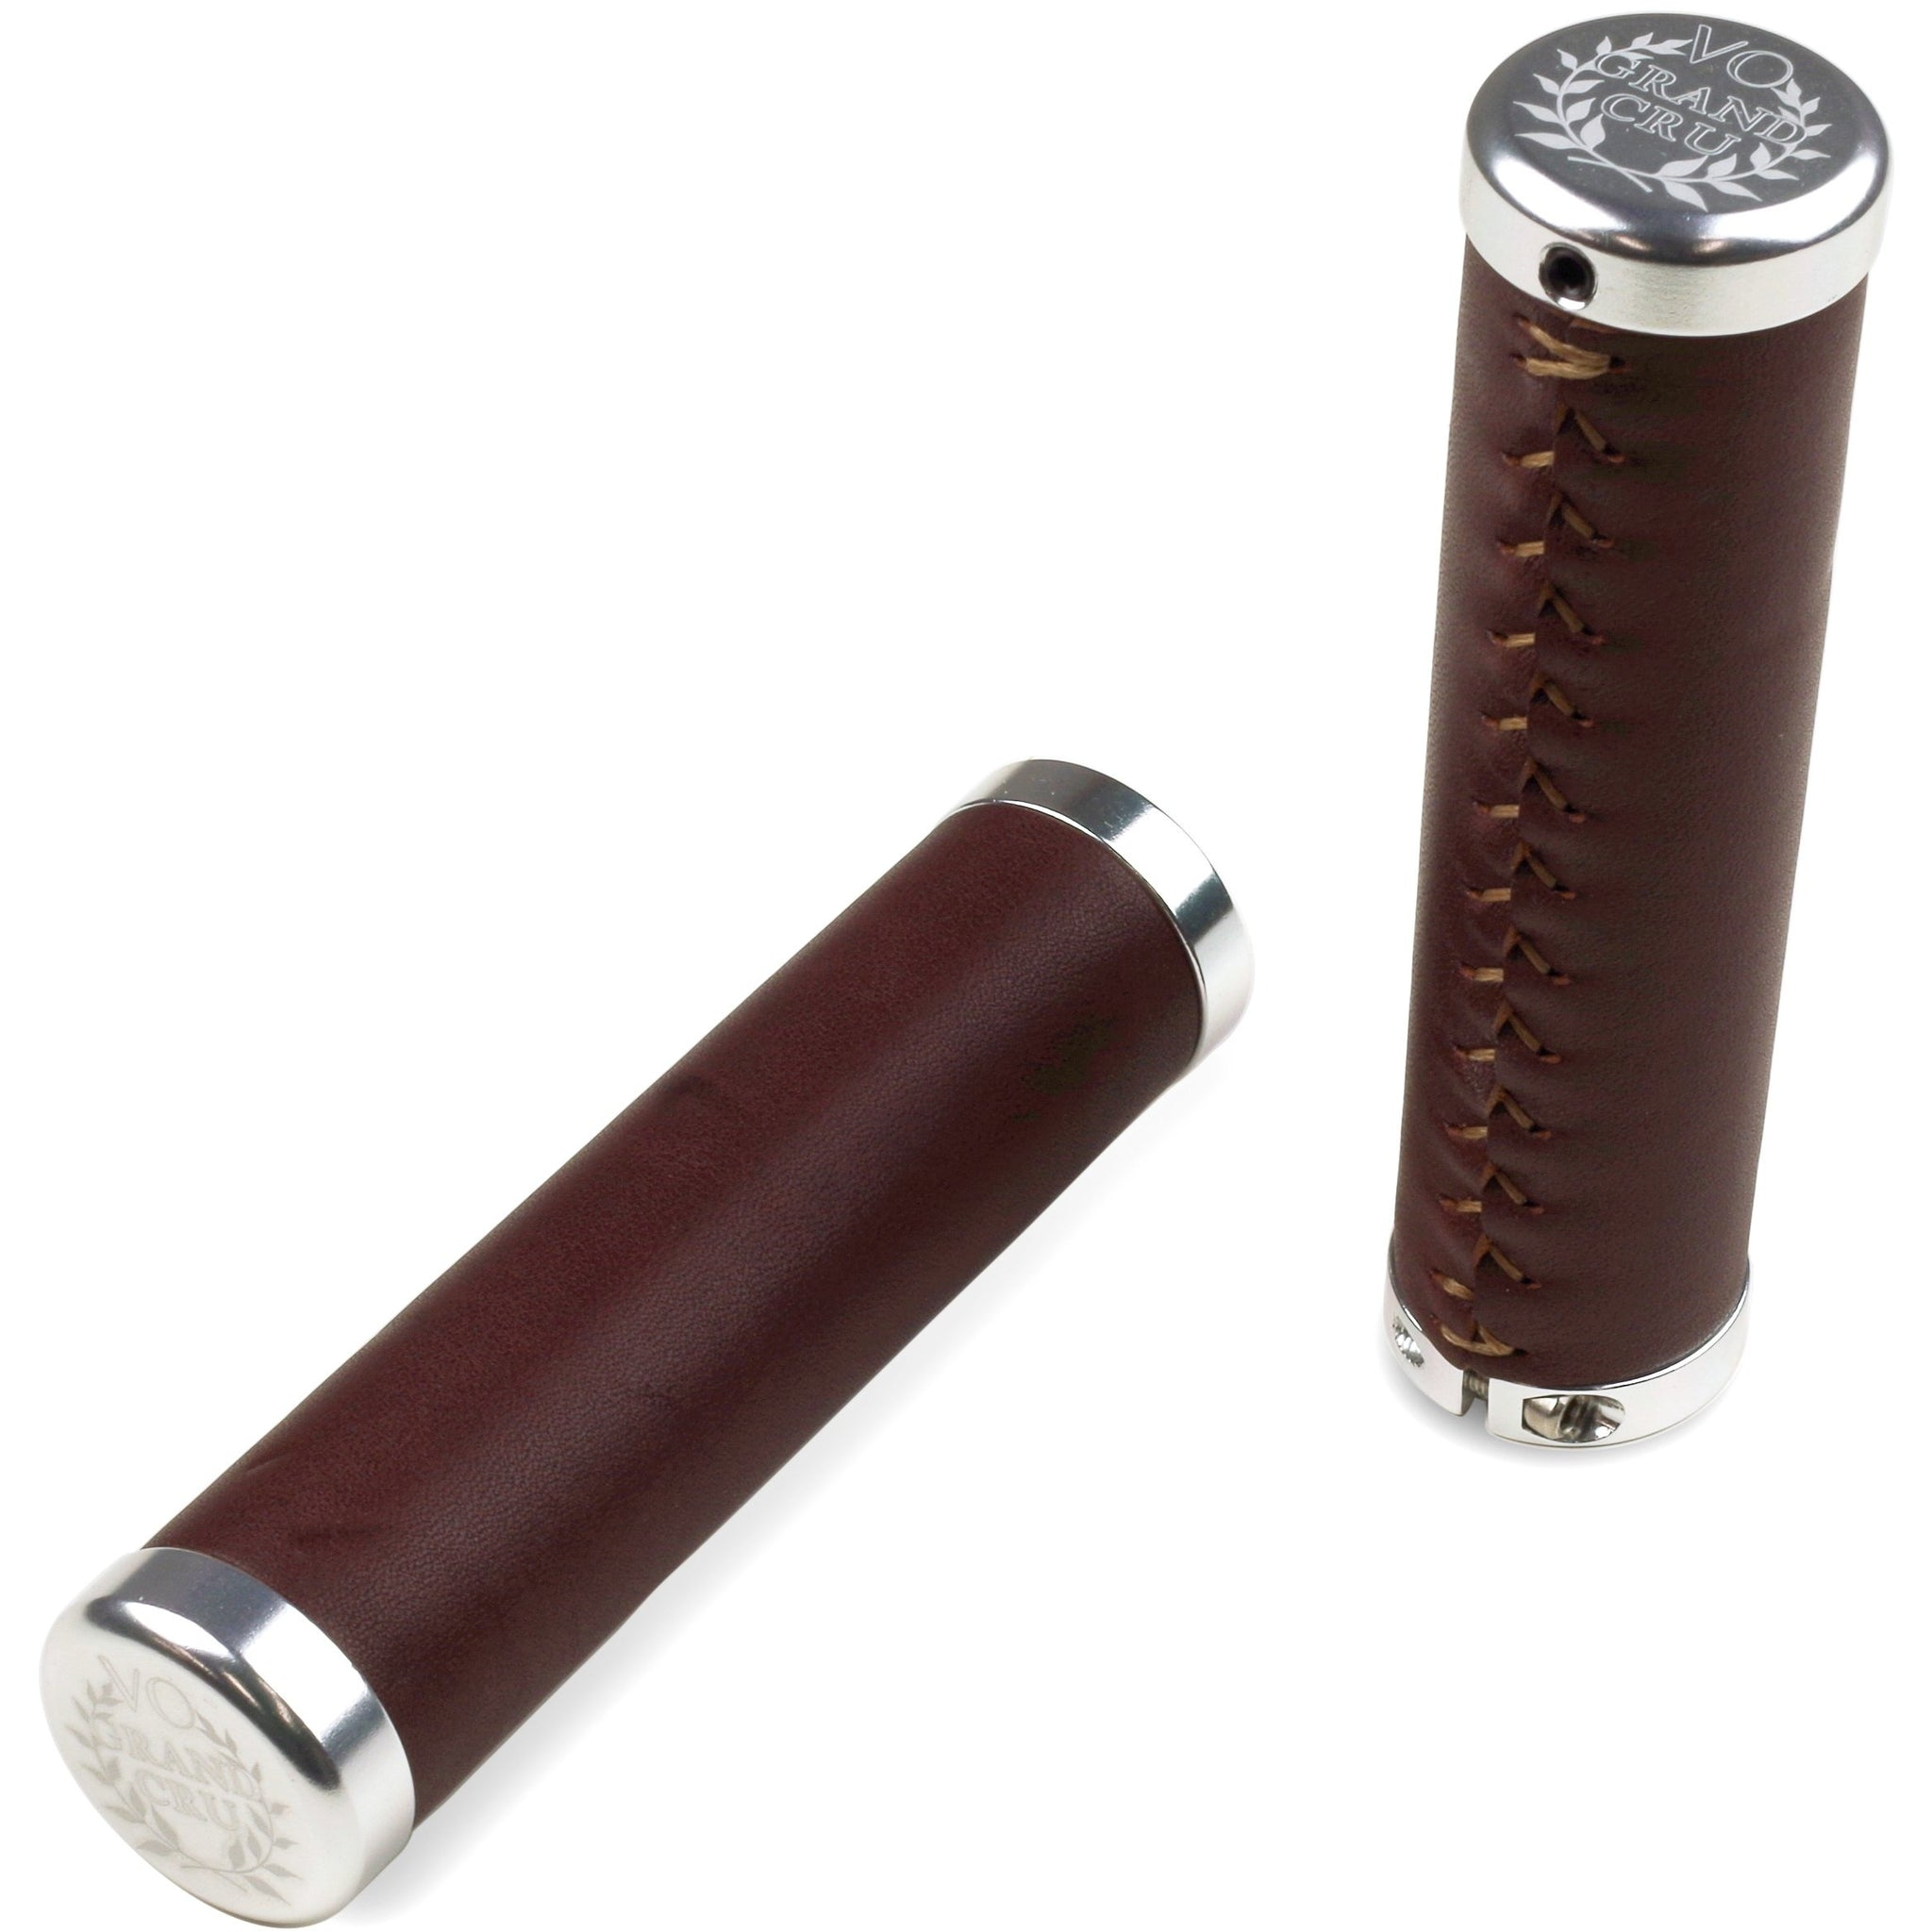 Lock-on Leather Grips